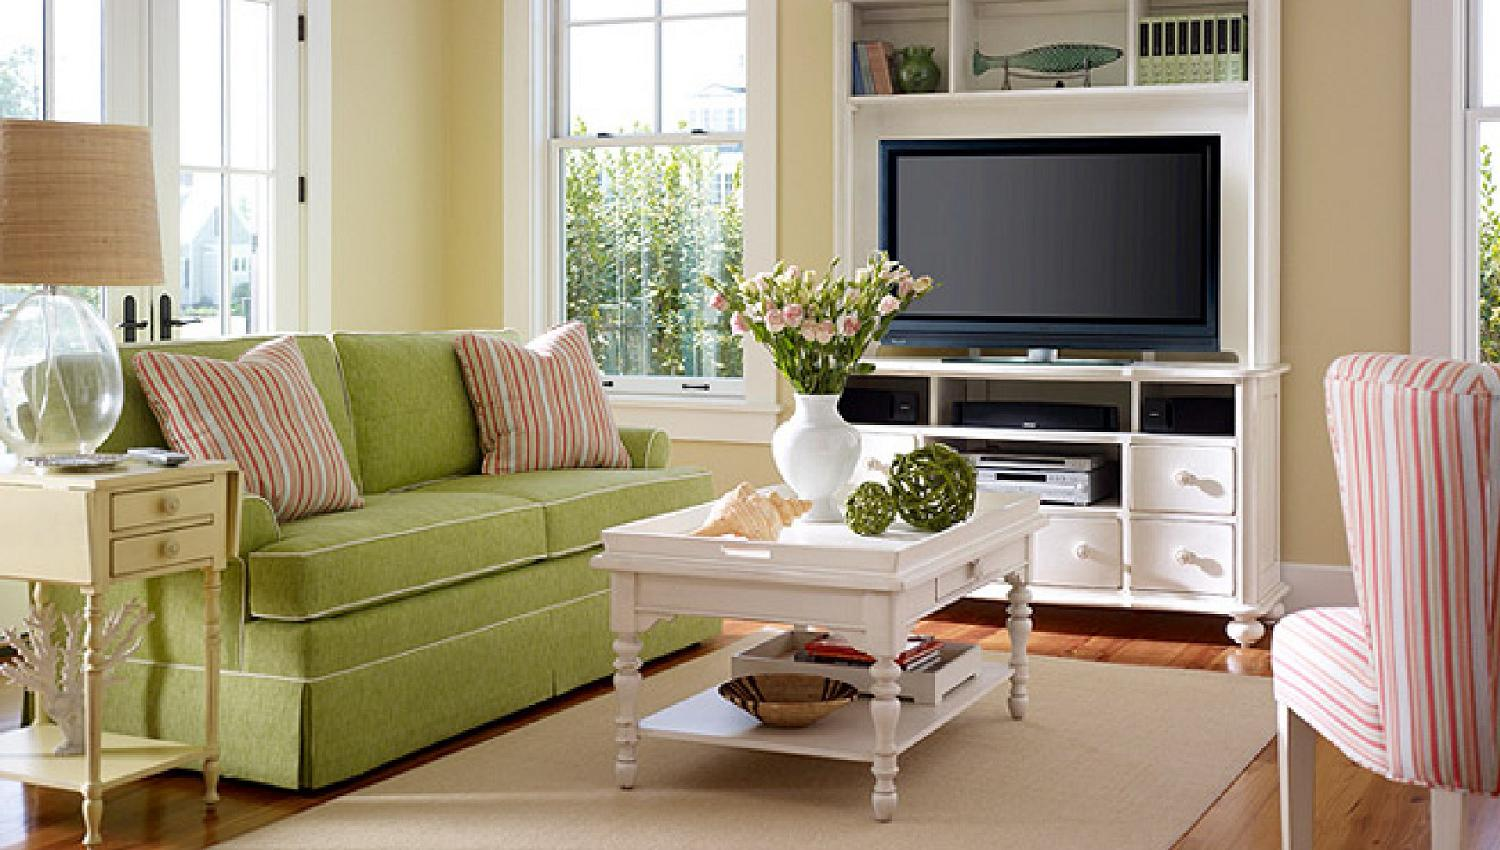 Tips for choosing living room furniture homeadvisor for Furniture for small living room